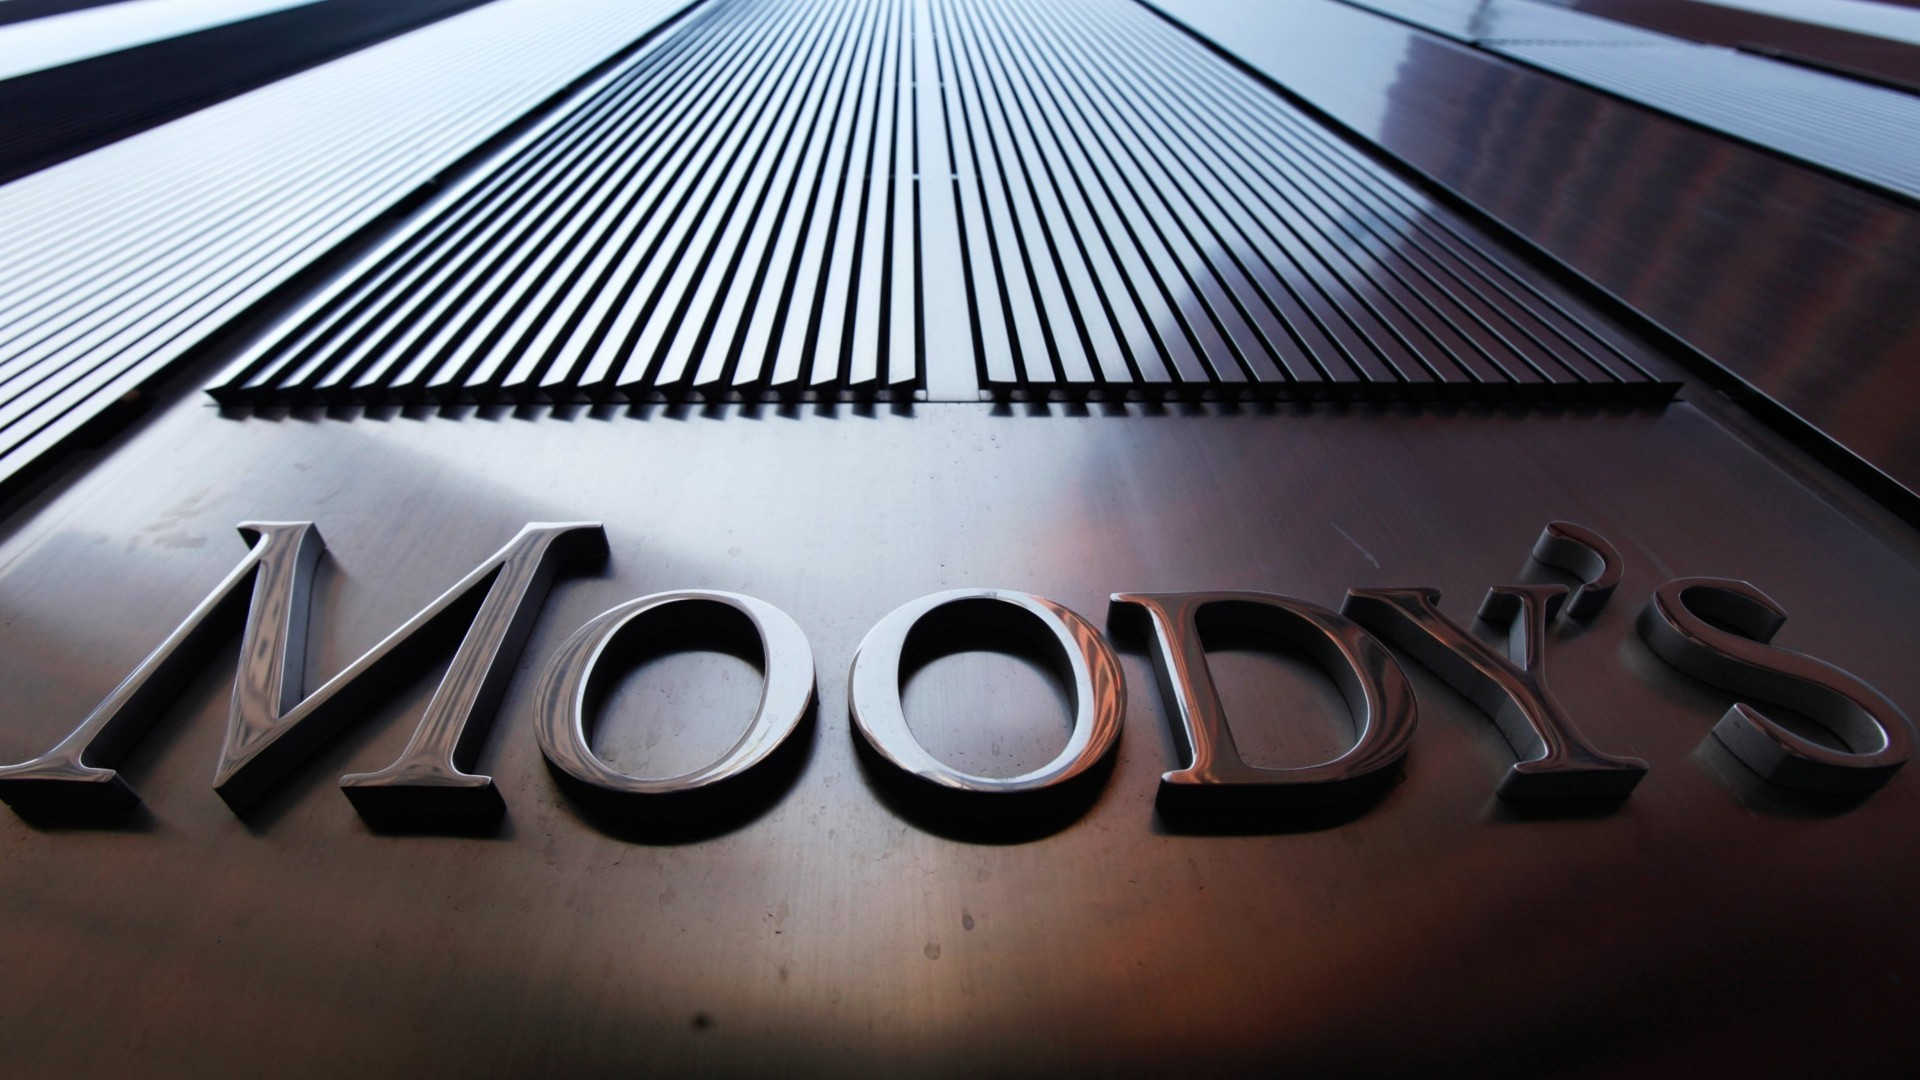 MOODY'S AND TURKEY'S NEW CREDIT RATE